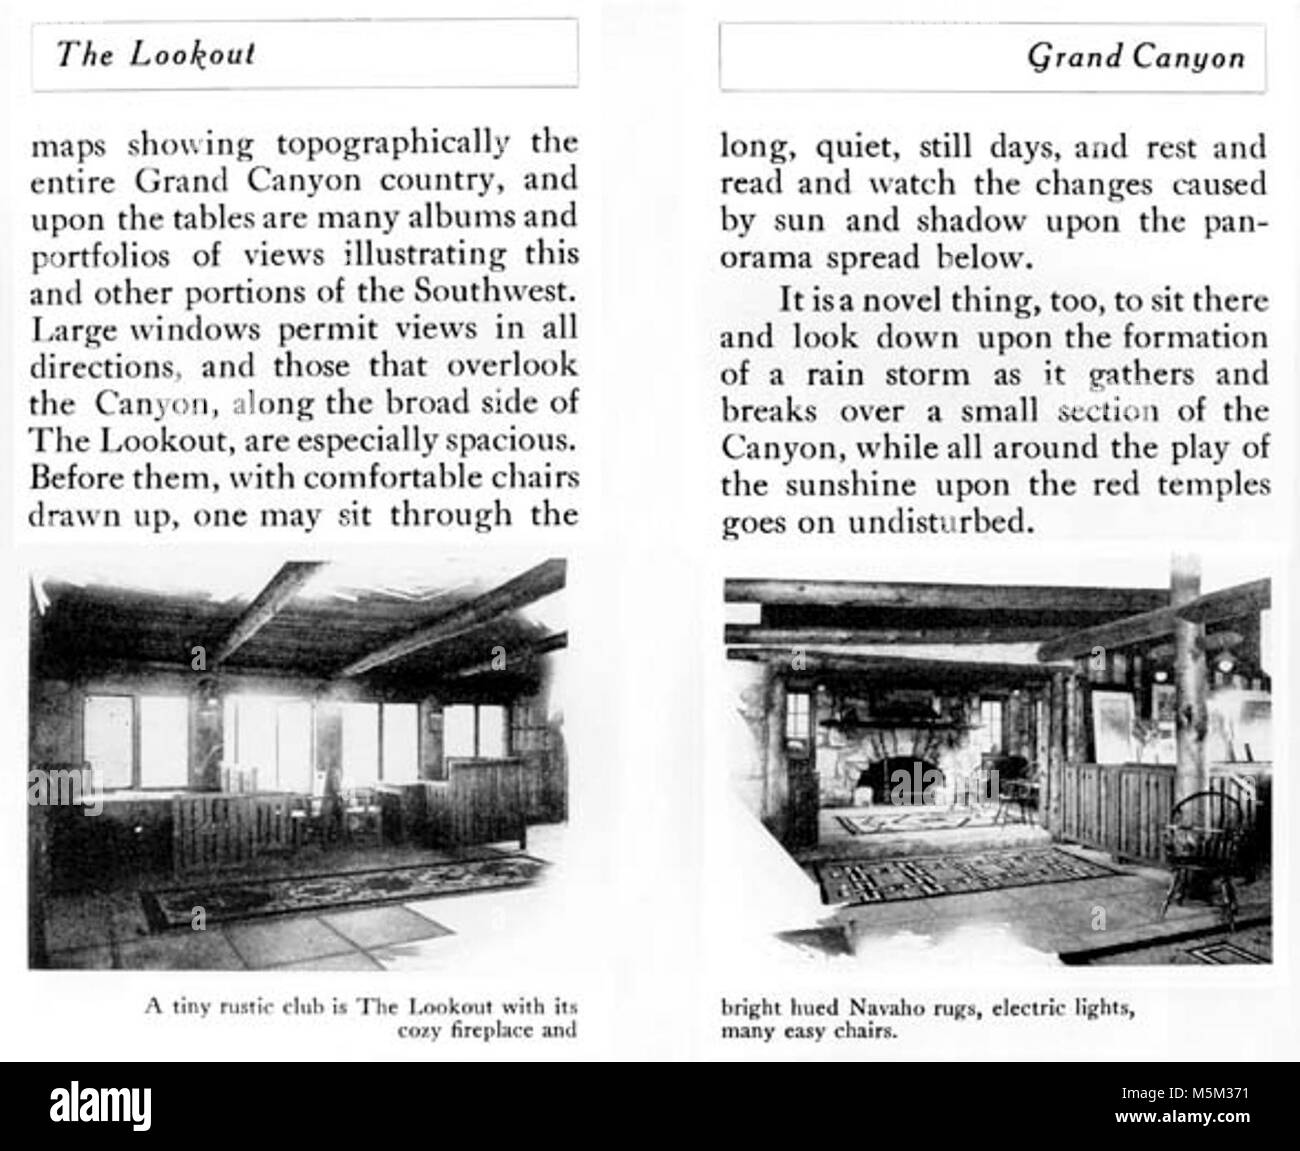 Grand Canyon Historic Lookout Studio Promo Book c  . LOOKOUT STUDIO BY COLTER - PROMO BOOK: TINY RUSTIC CLUB W/ - Stock Image